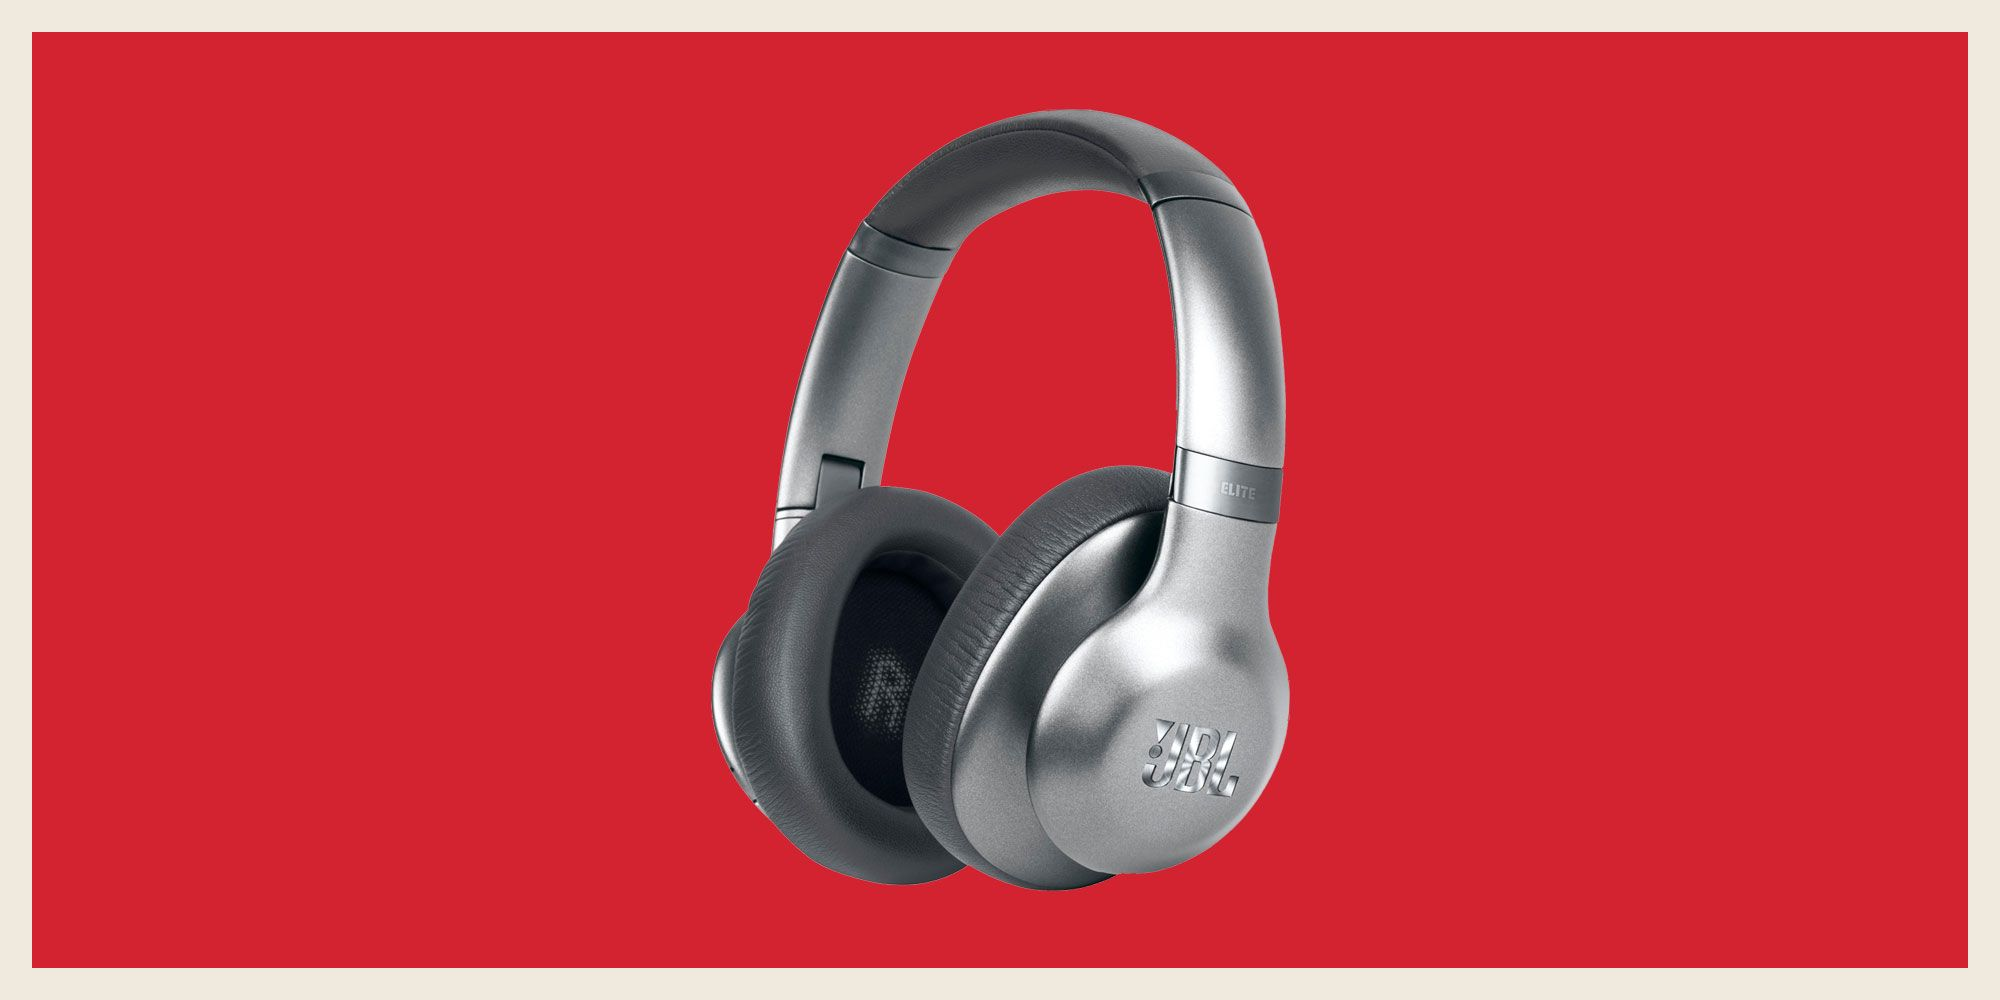 Amazon's Sale on These JBL Everest 750 Wireless Headphones is Music to Our Ears